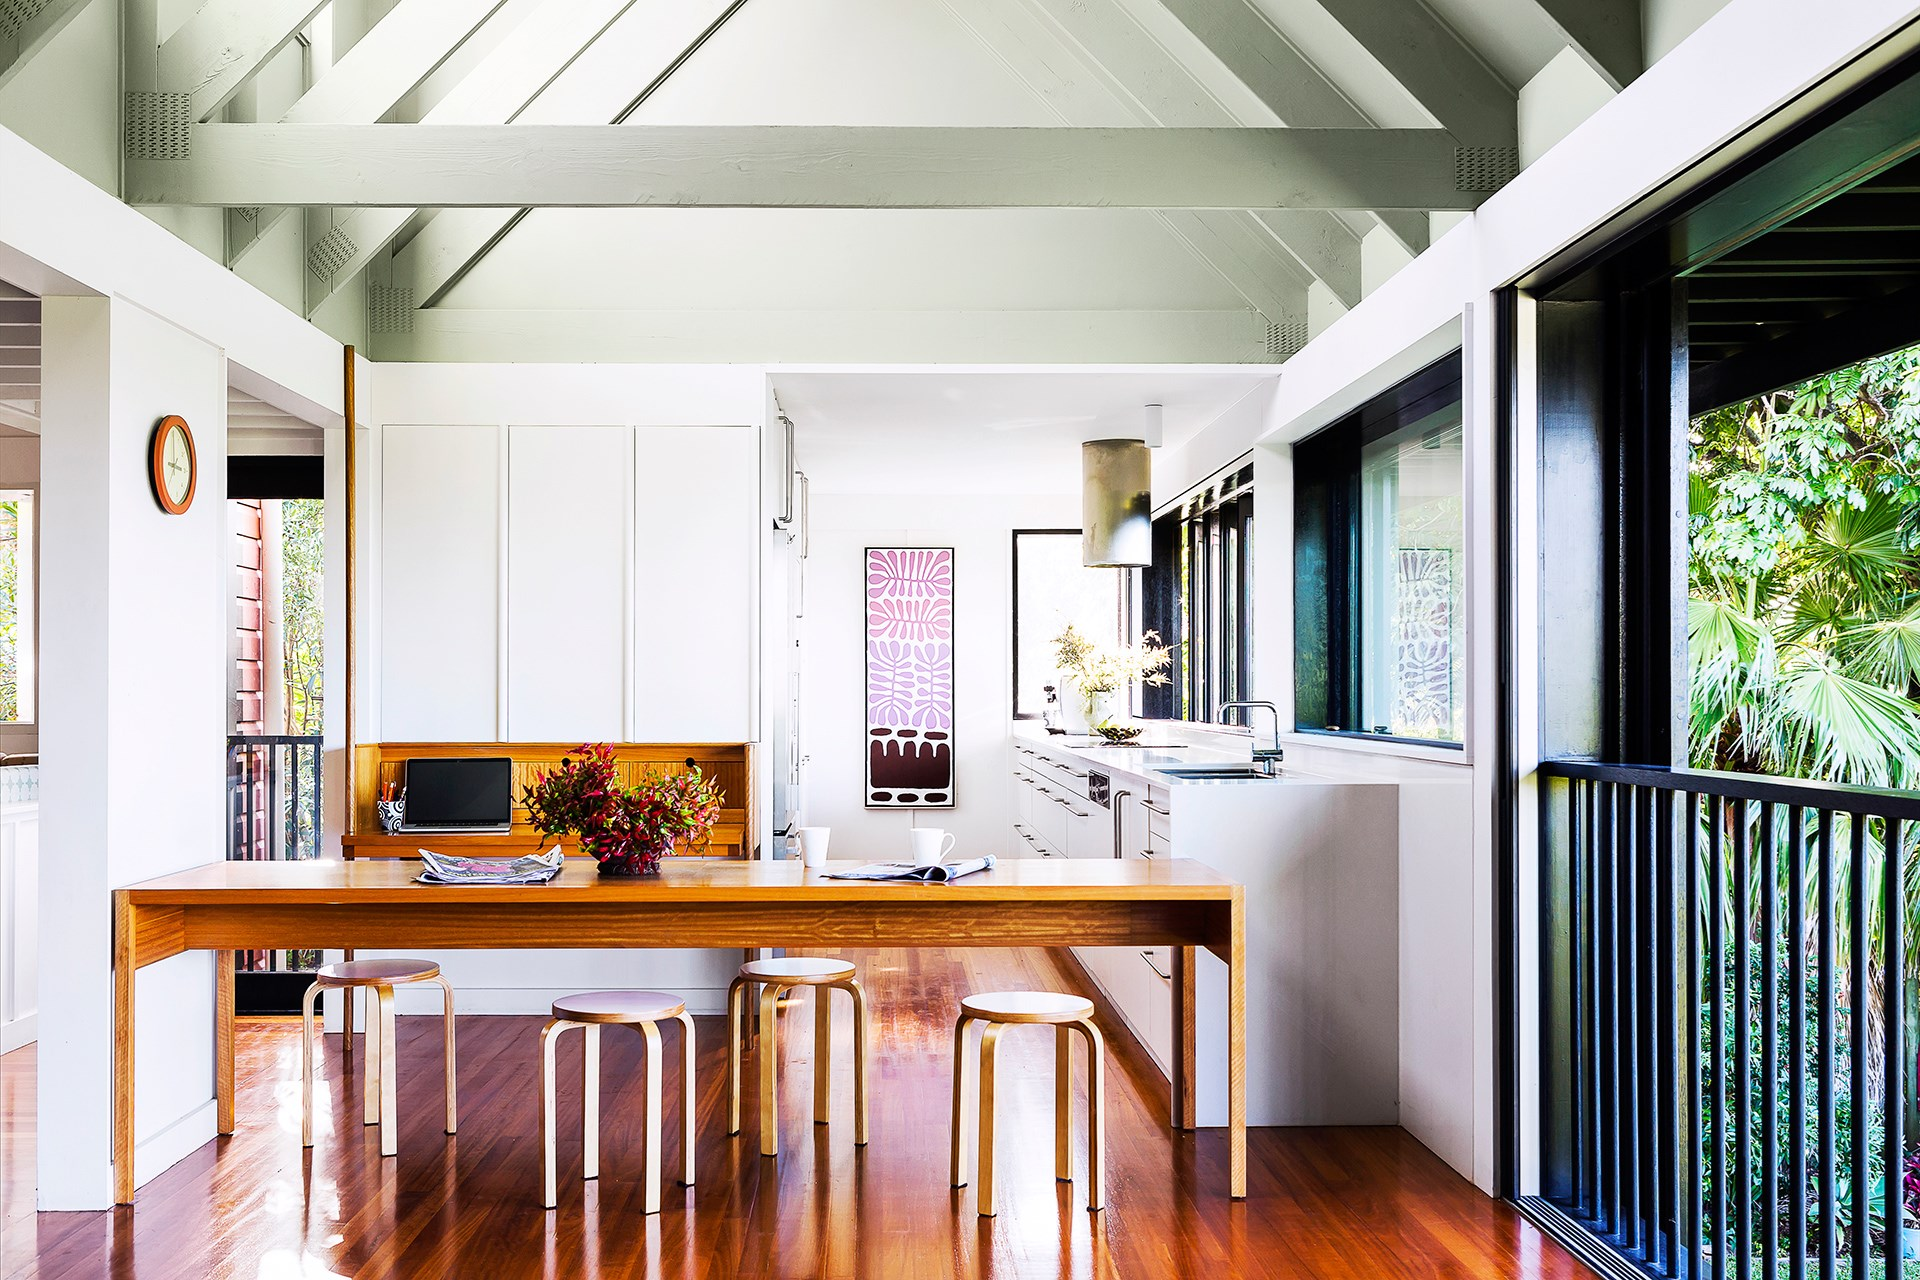 """See more of this [Queenslander that brings the outdoors in](http://www.homestolove.com.au/gallery-queenslander-reno-brings-outdoors-in-2555